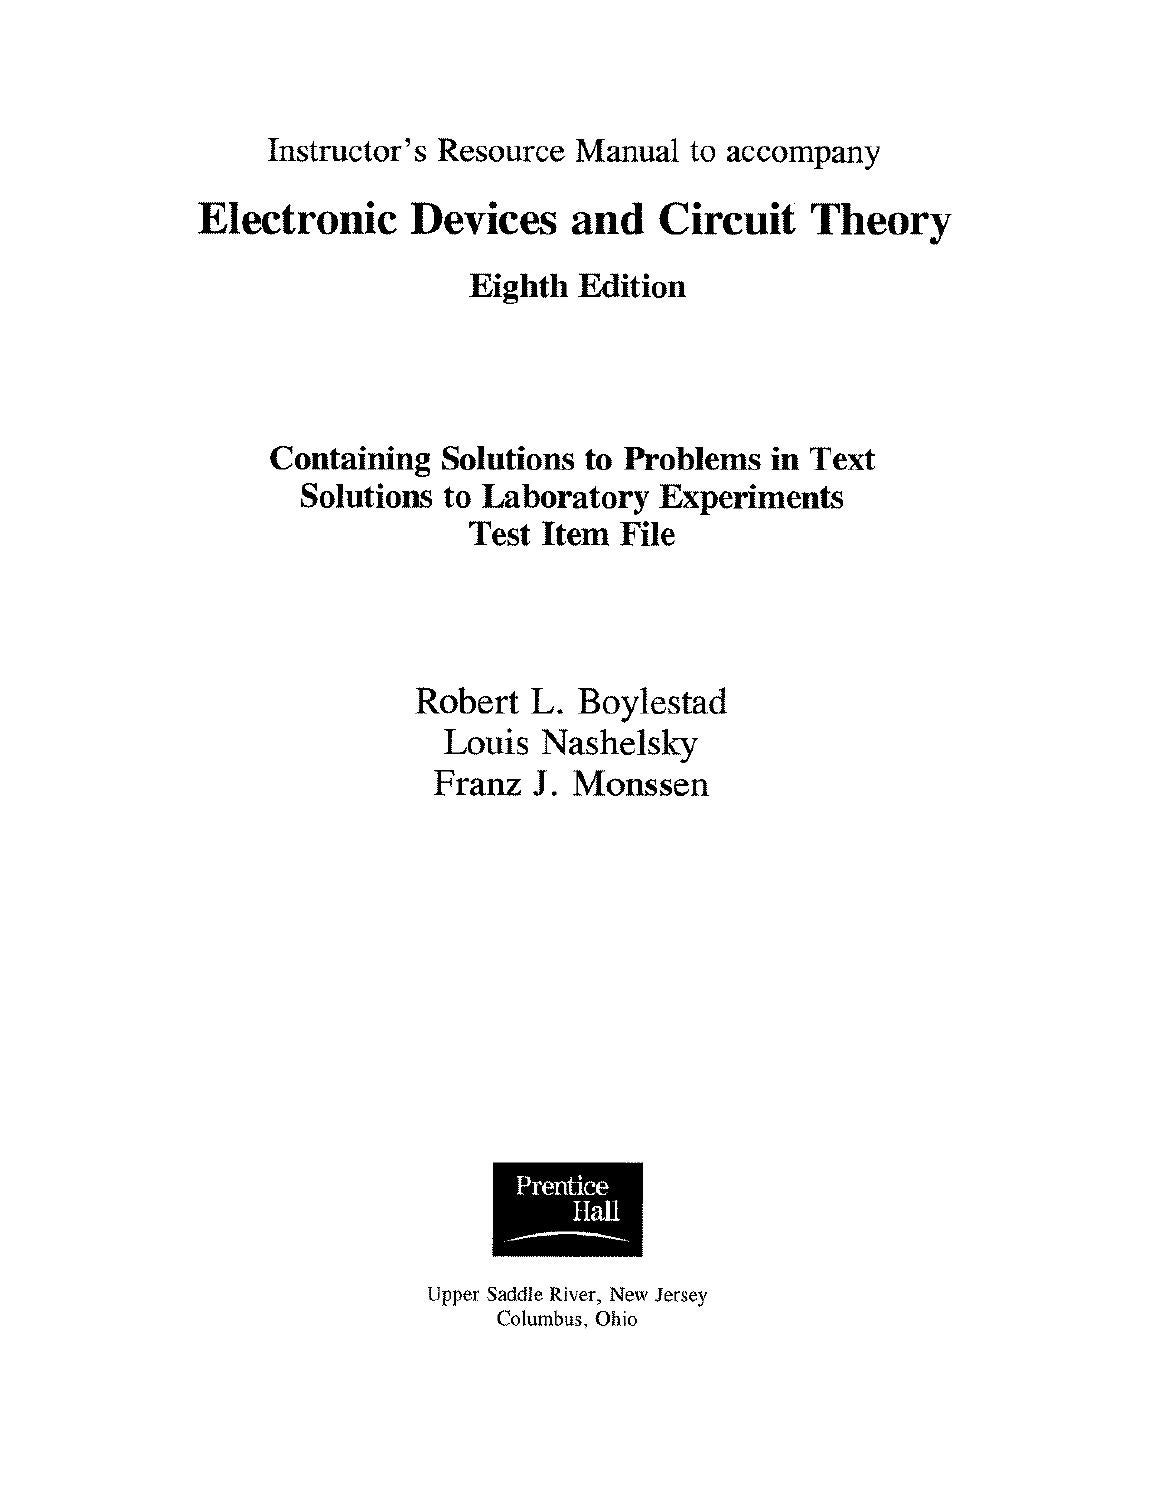 Solutions electronic devices and circuit theory nashelsky & boylestad 8th  edition by Faheem Ajmal - issuu